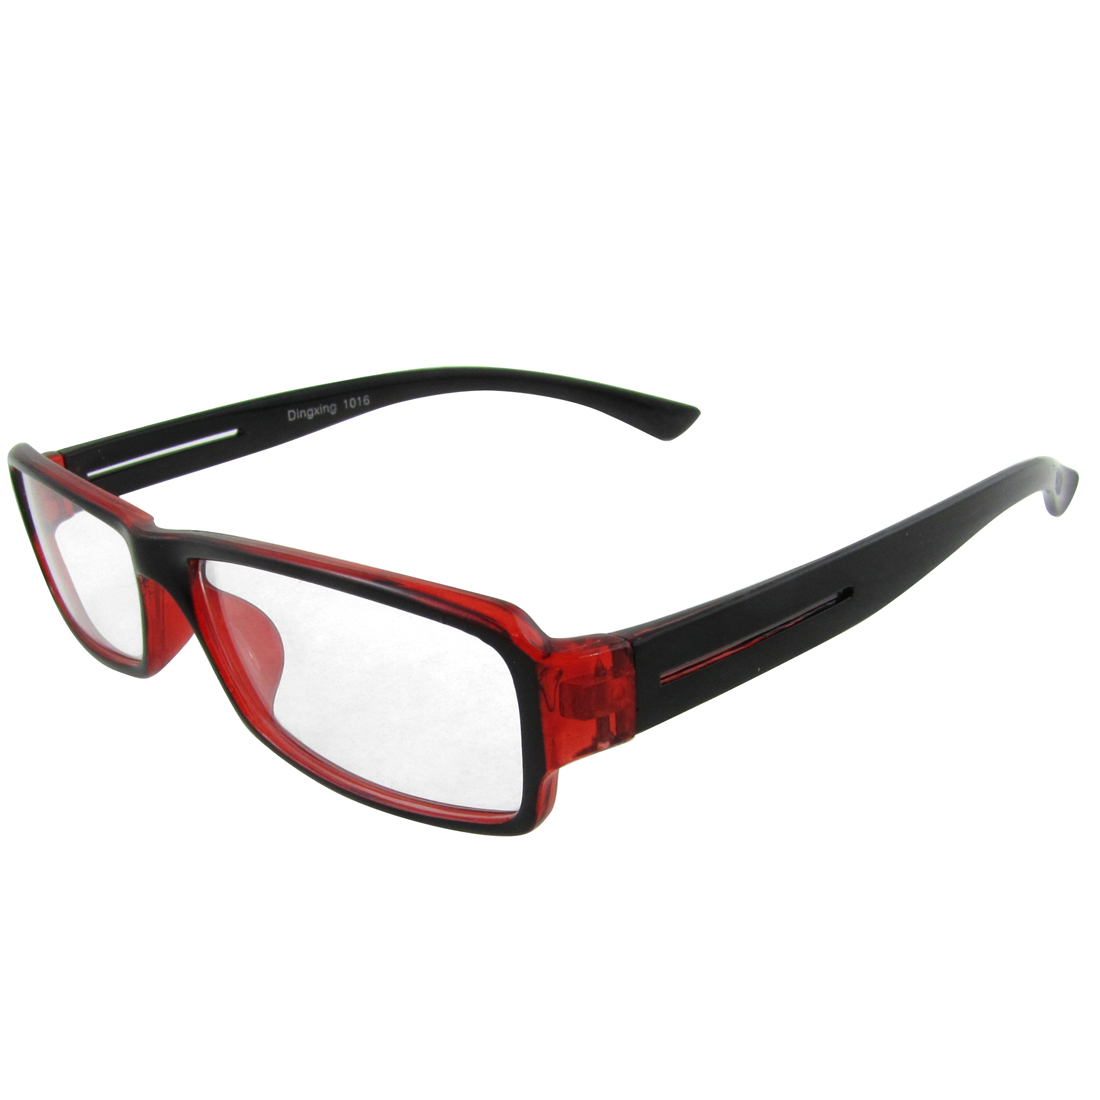 Black Red Full Frame Clear Lens Plano Eyeglasses for Women